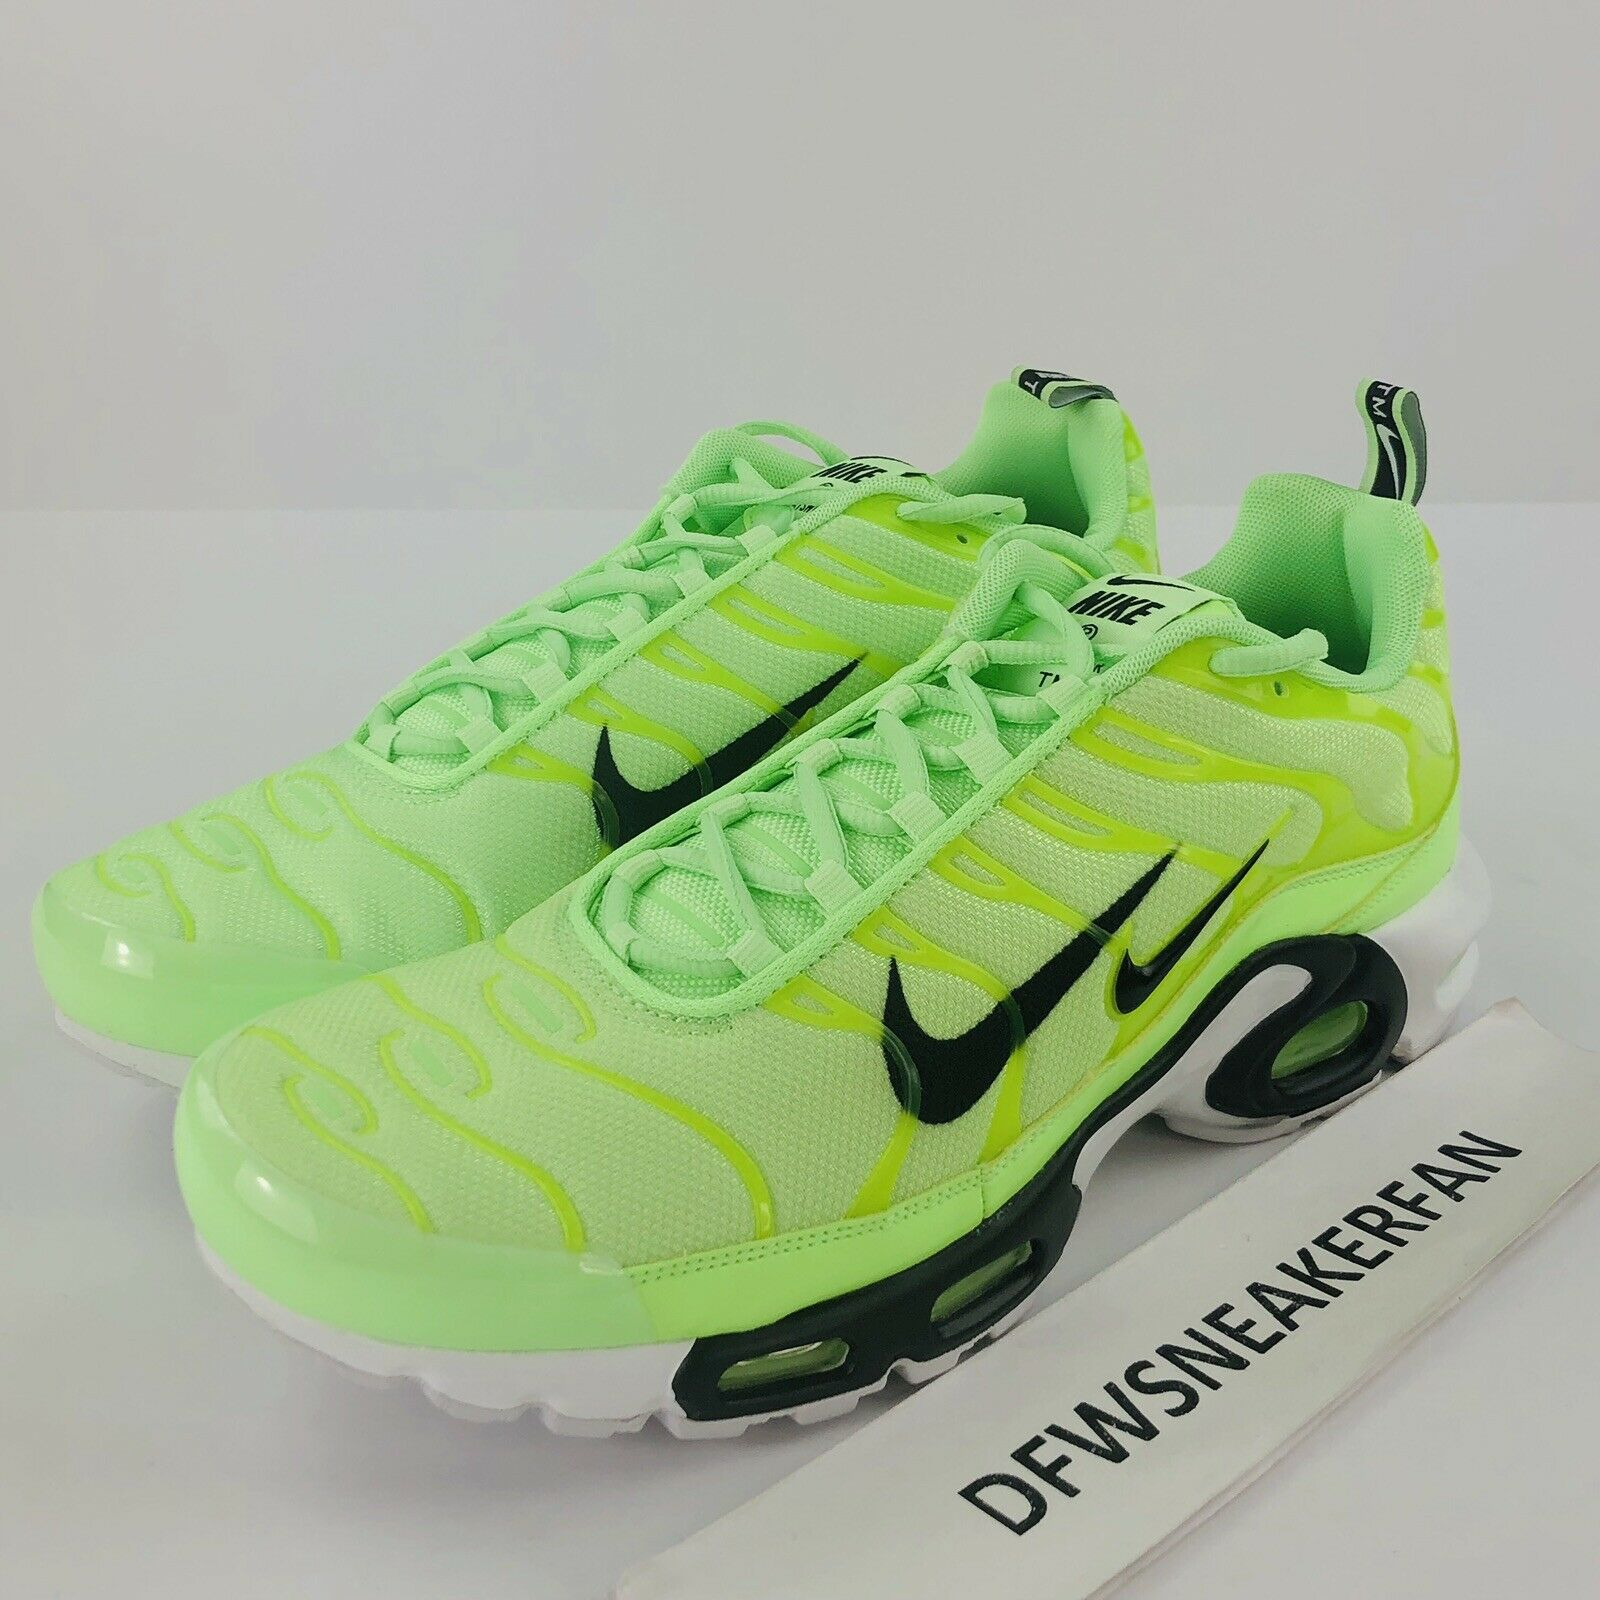 Nike Air Max Plus PRM TN Lime Blast Men SZ 13 Running Sneakers 815994 300 New